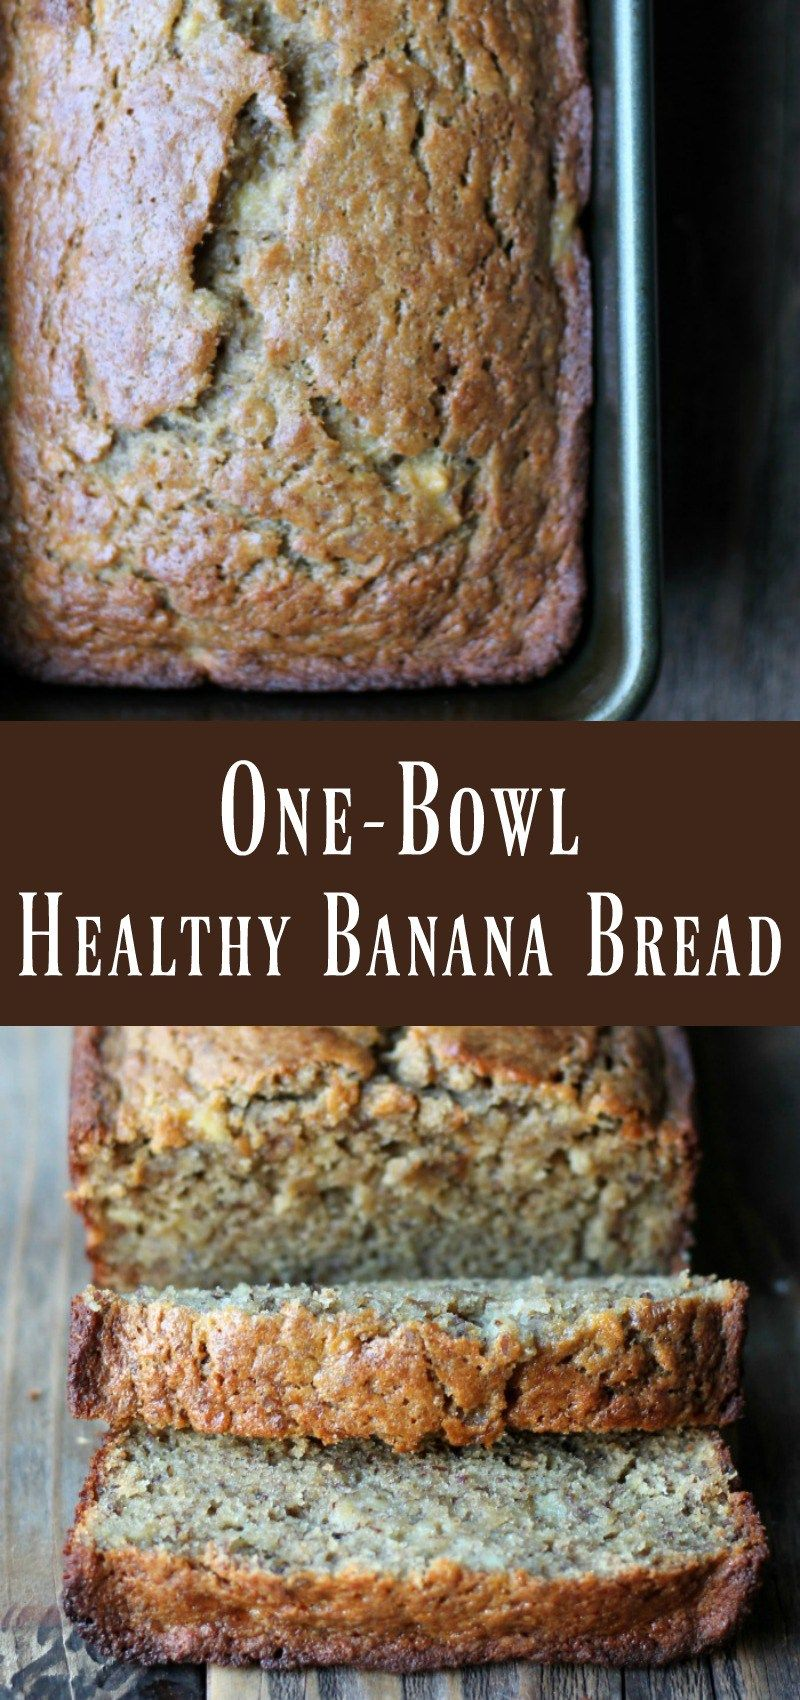 One-bowl Healthy Banana Bread images